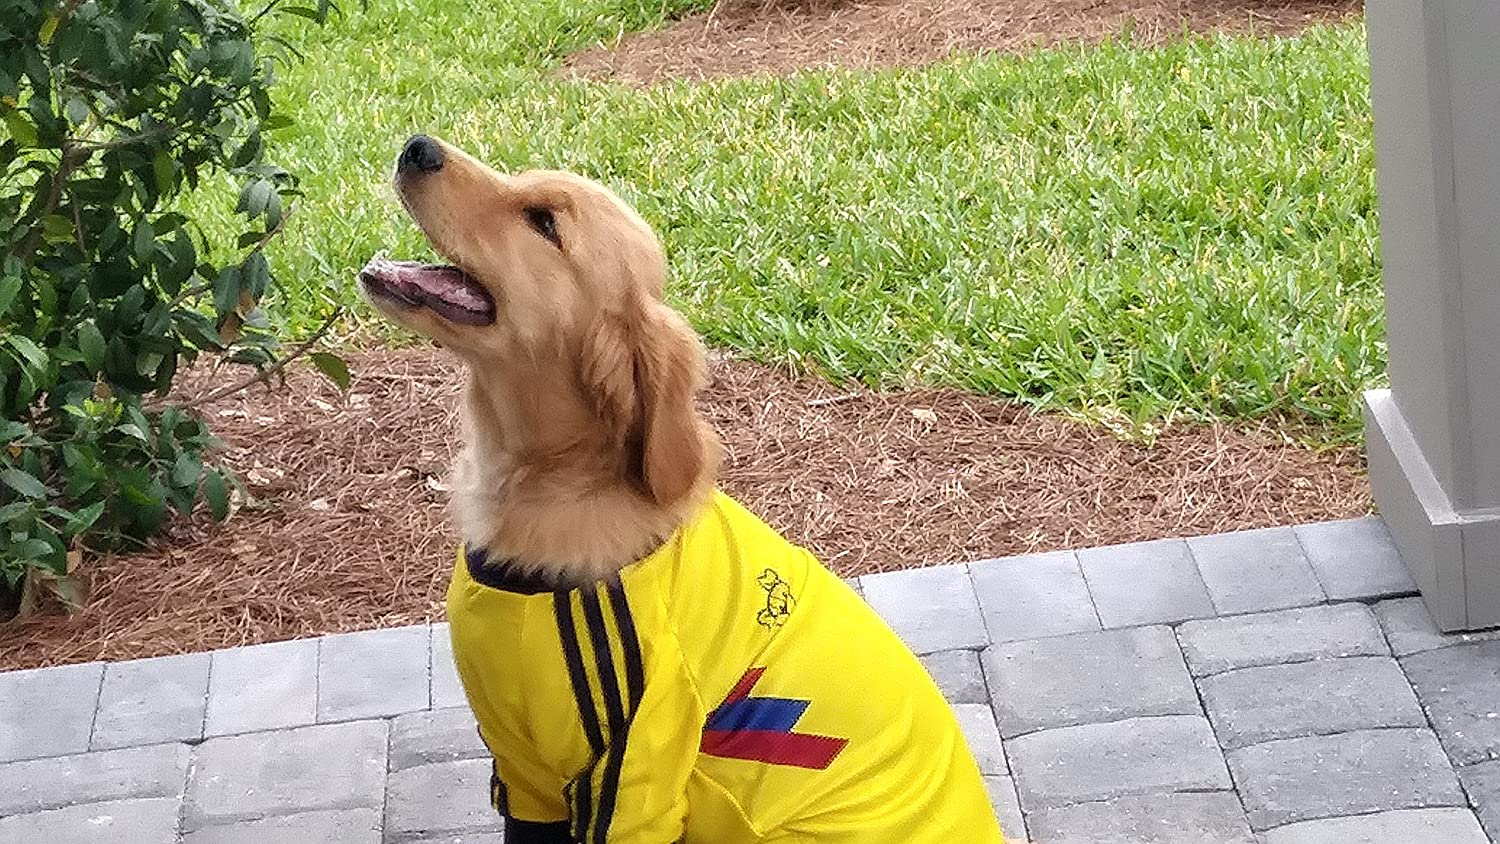 Amazon.com : Panama DOG T-Shirt Worldcup Shirt camisetas para perros selecciones futbol soccer (S) : Pet Supplies